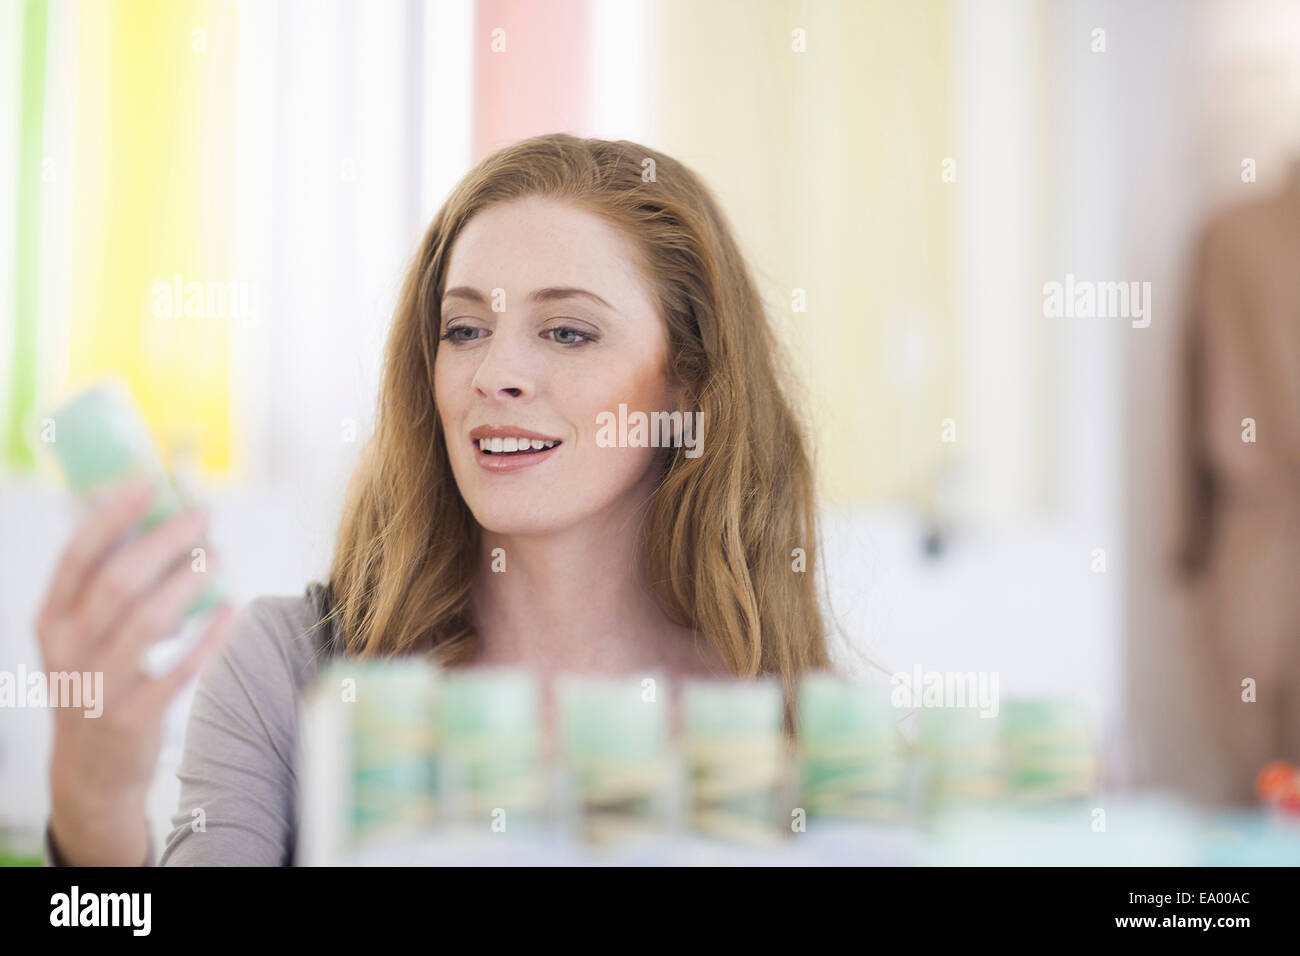 Woman browsing products on display shelf - Stock Image